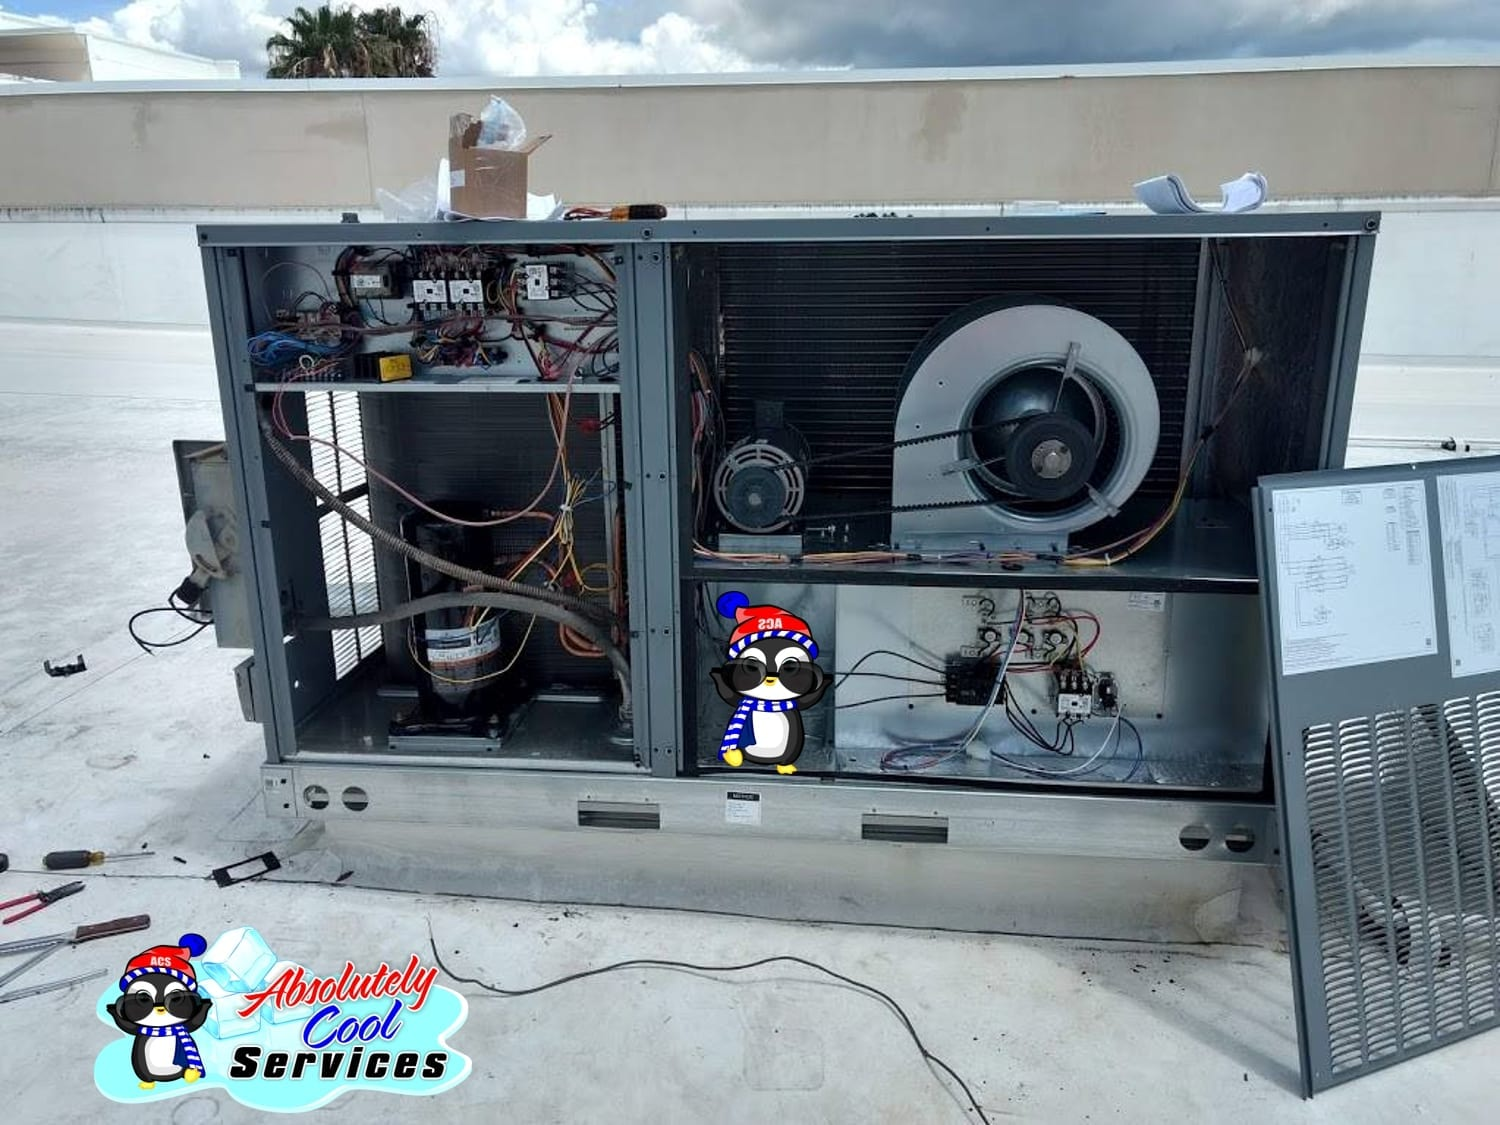 Roof Air Conditioning | Emergency Air Conditioning Maintenance Company near Boynton Beach